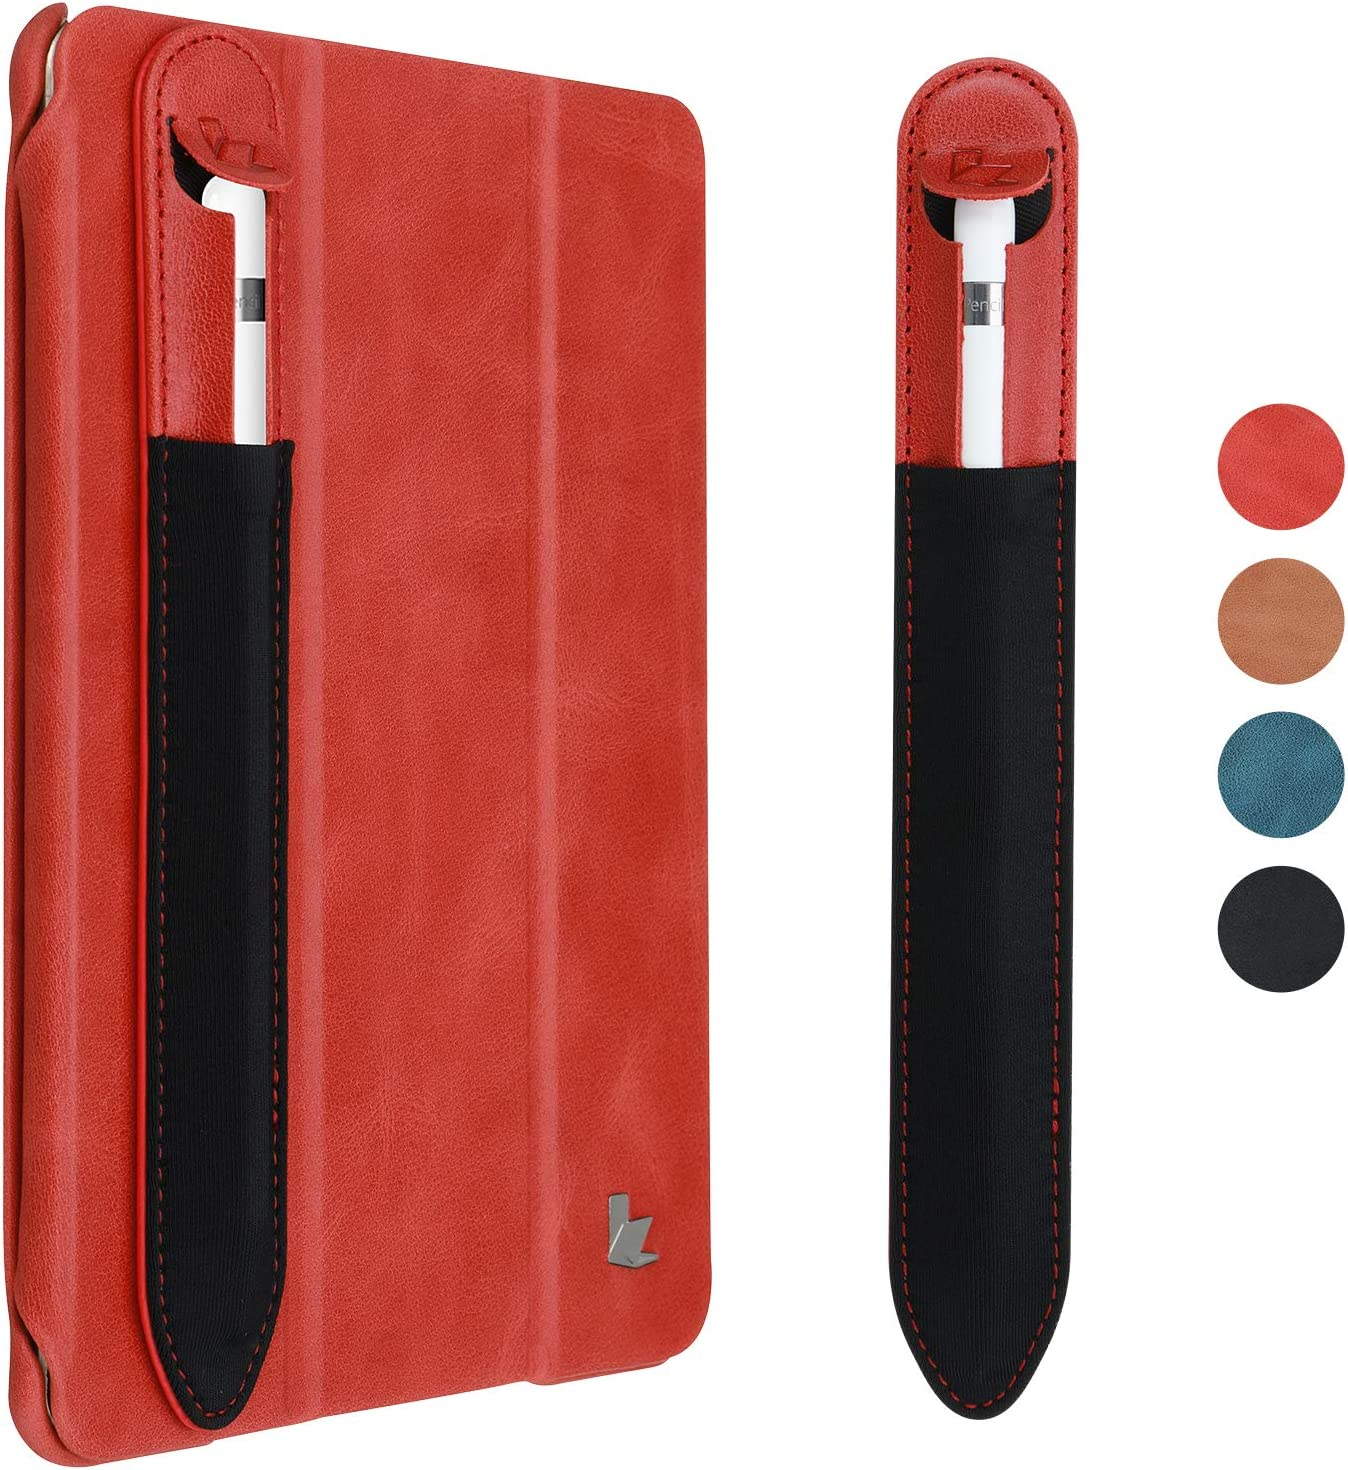 Apple Pencil Holder Sticker,Jisoncase Apple Pencil 2nd and 1st Gen Protective Elastic & Leather Pouch Pocket Adhesive Case Sleeve Compatible with iPad Pro and iPad Mini 5/4 iPad Red